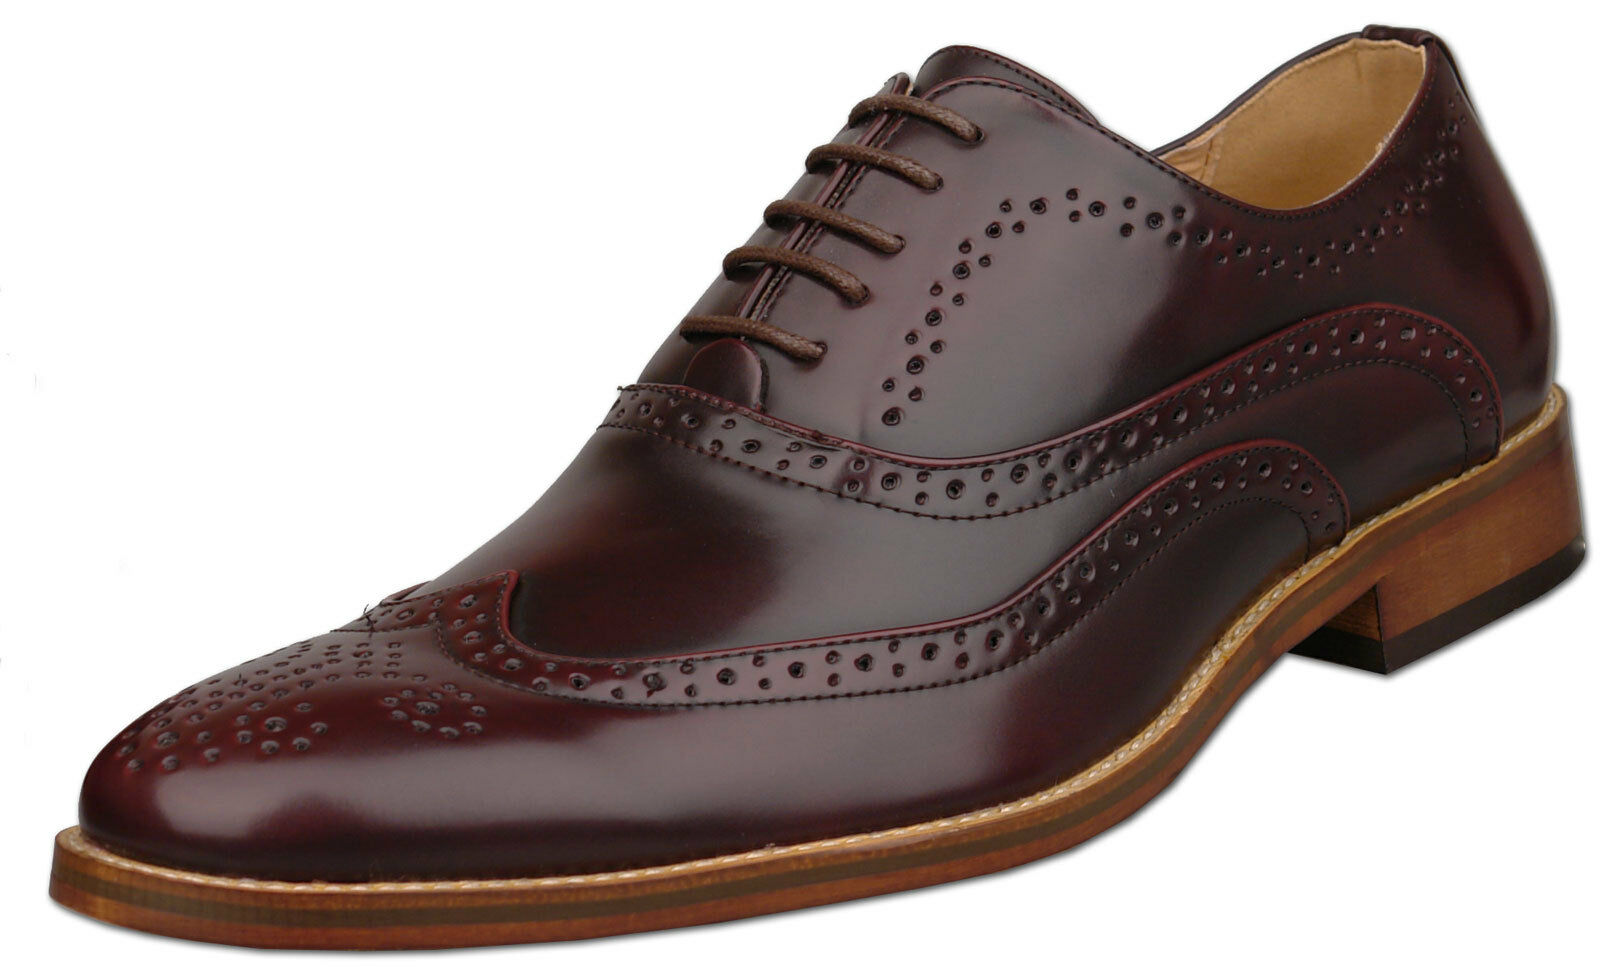 Mens New Oxblood Leather Lined Lace Up Formal Brogue shoes Size6 7 8 9 10 11 12